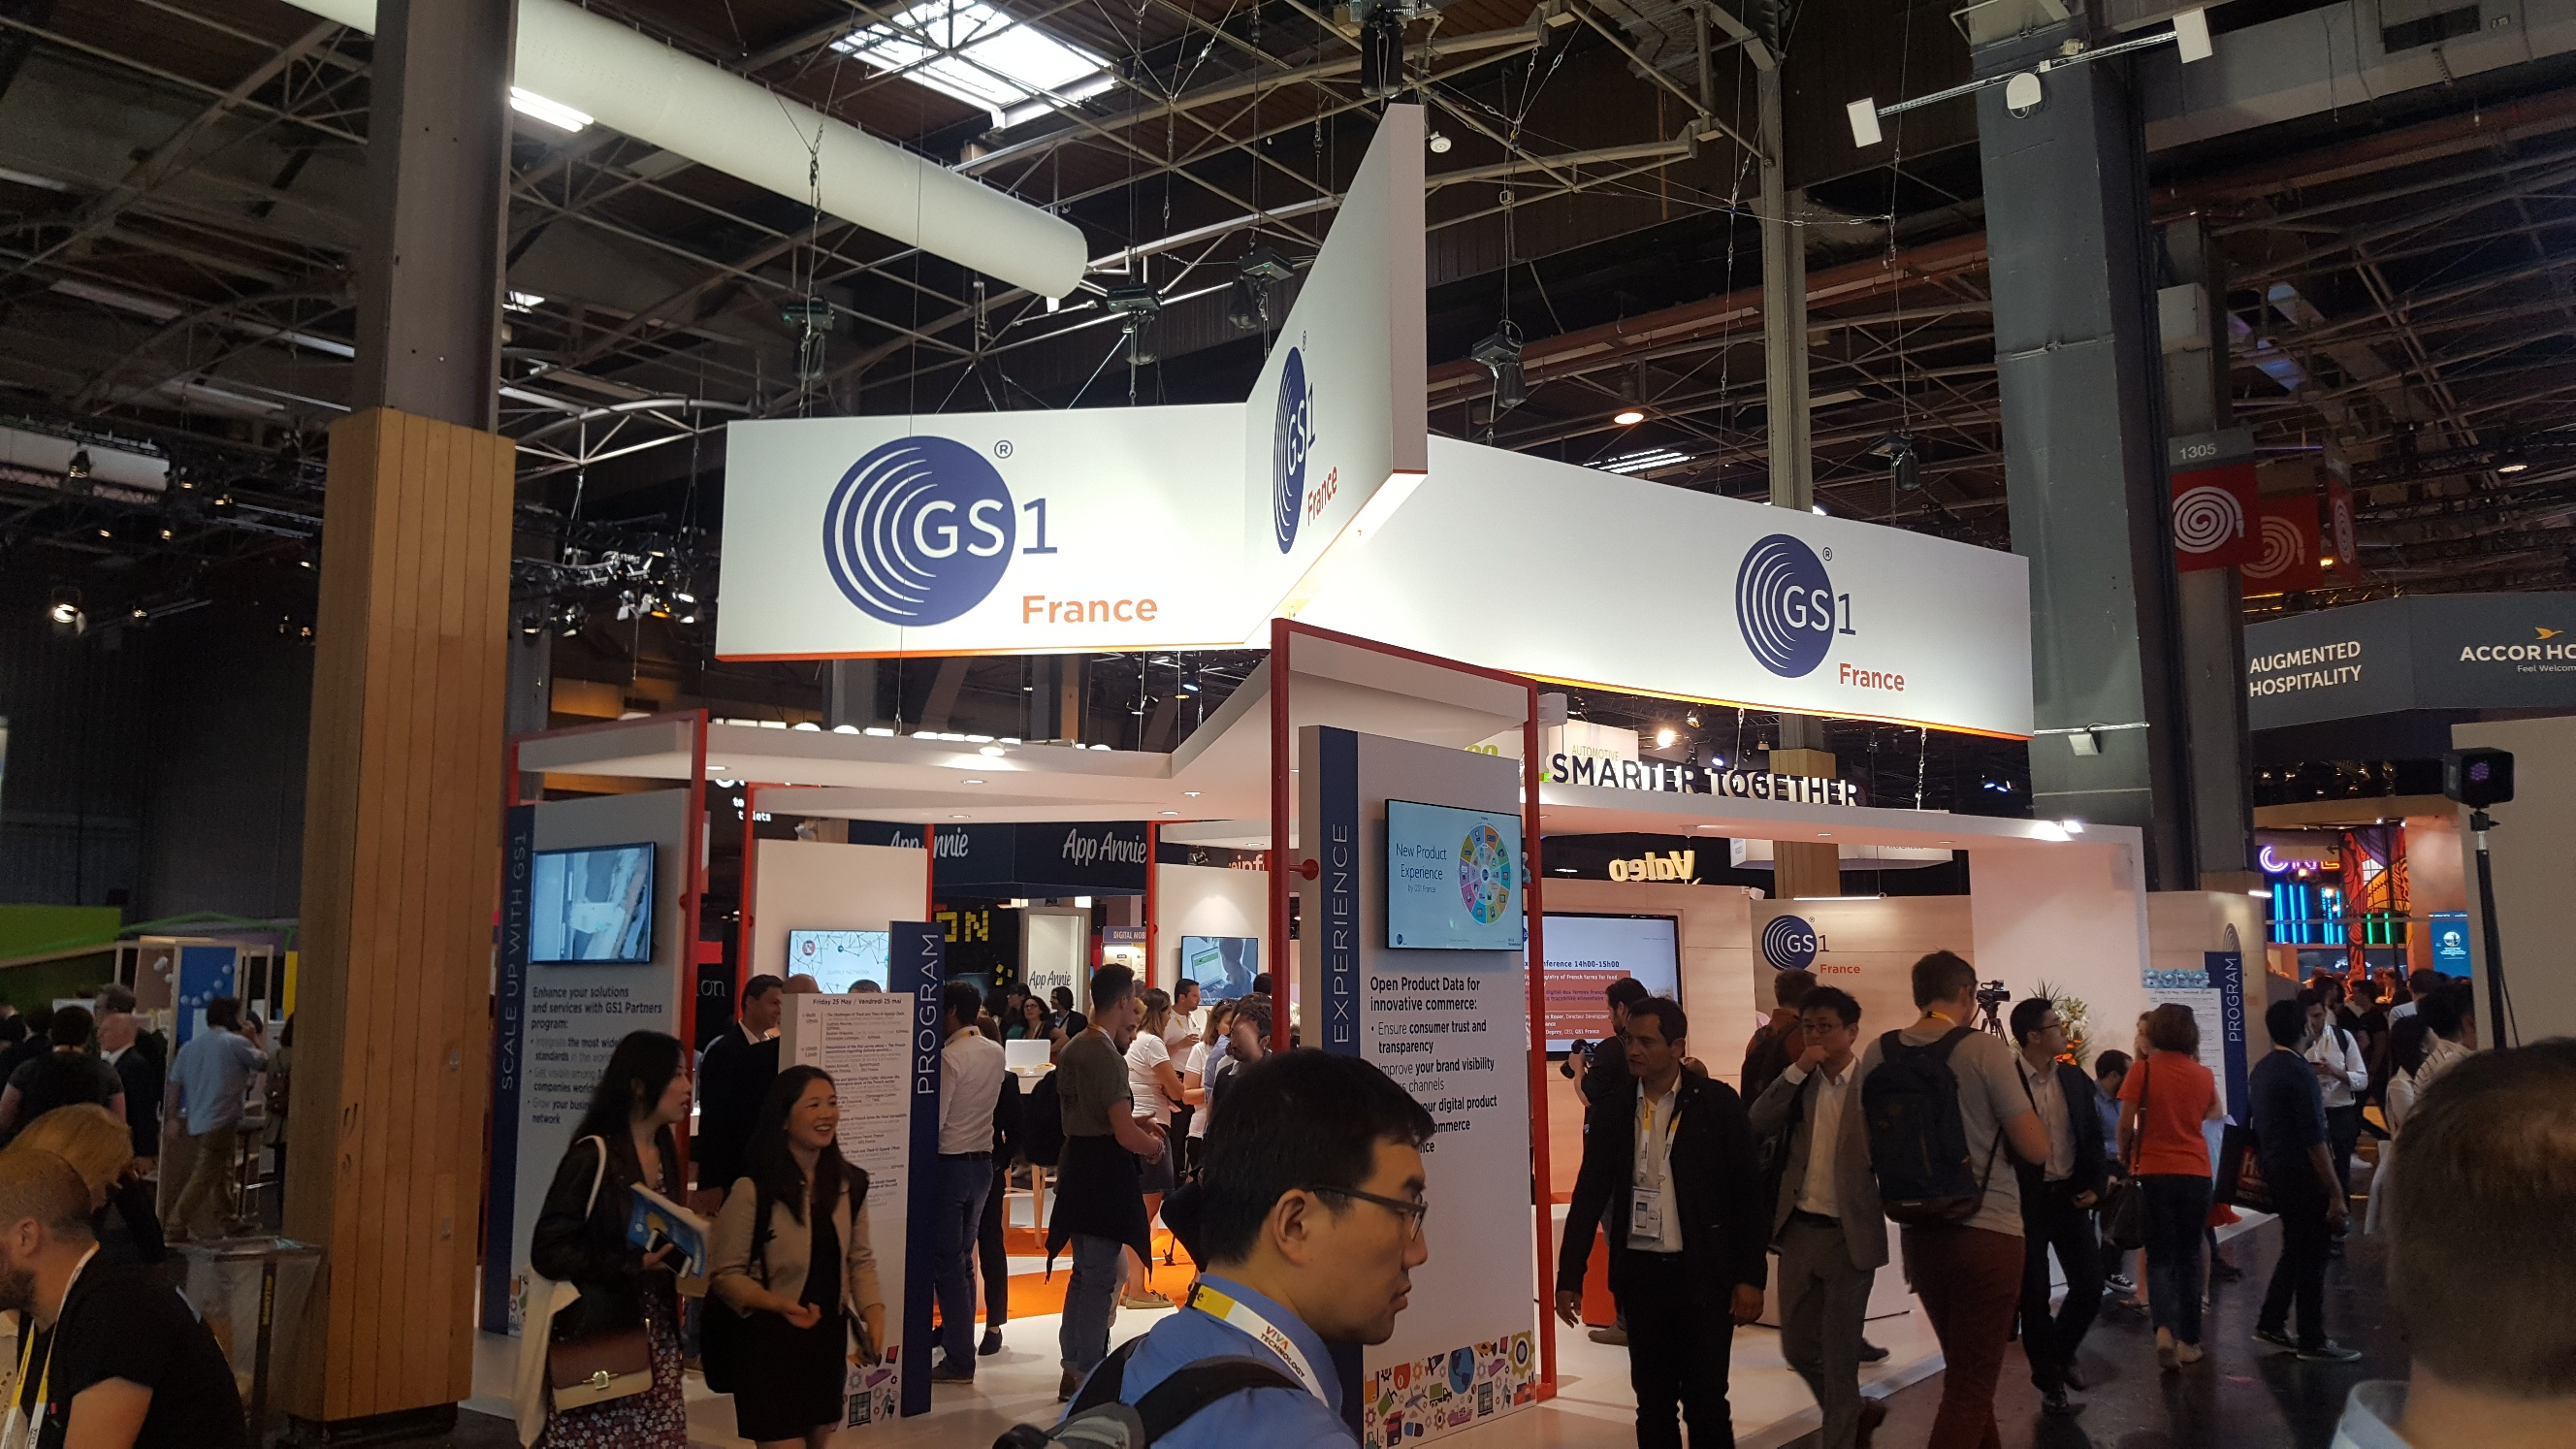 GS1 France booth at VivaTech